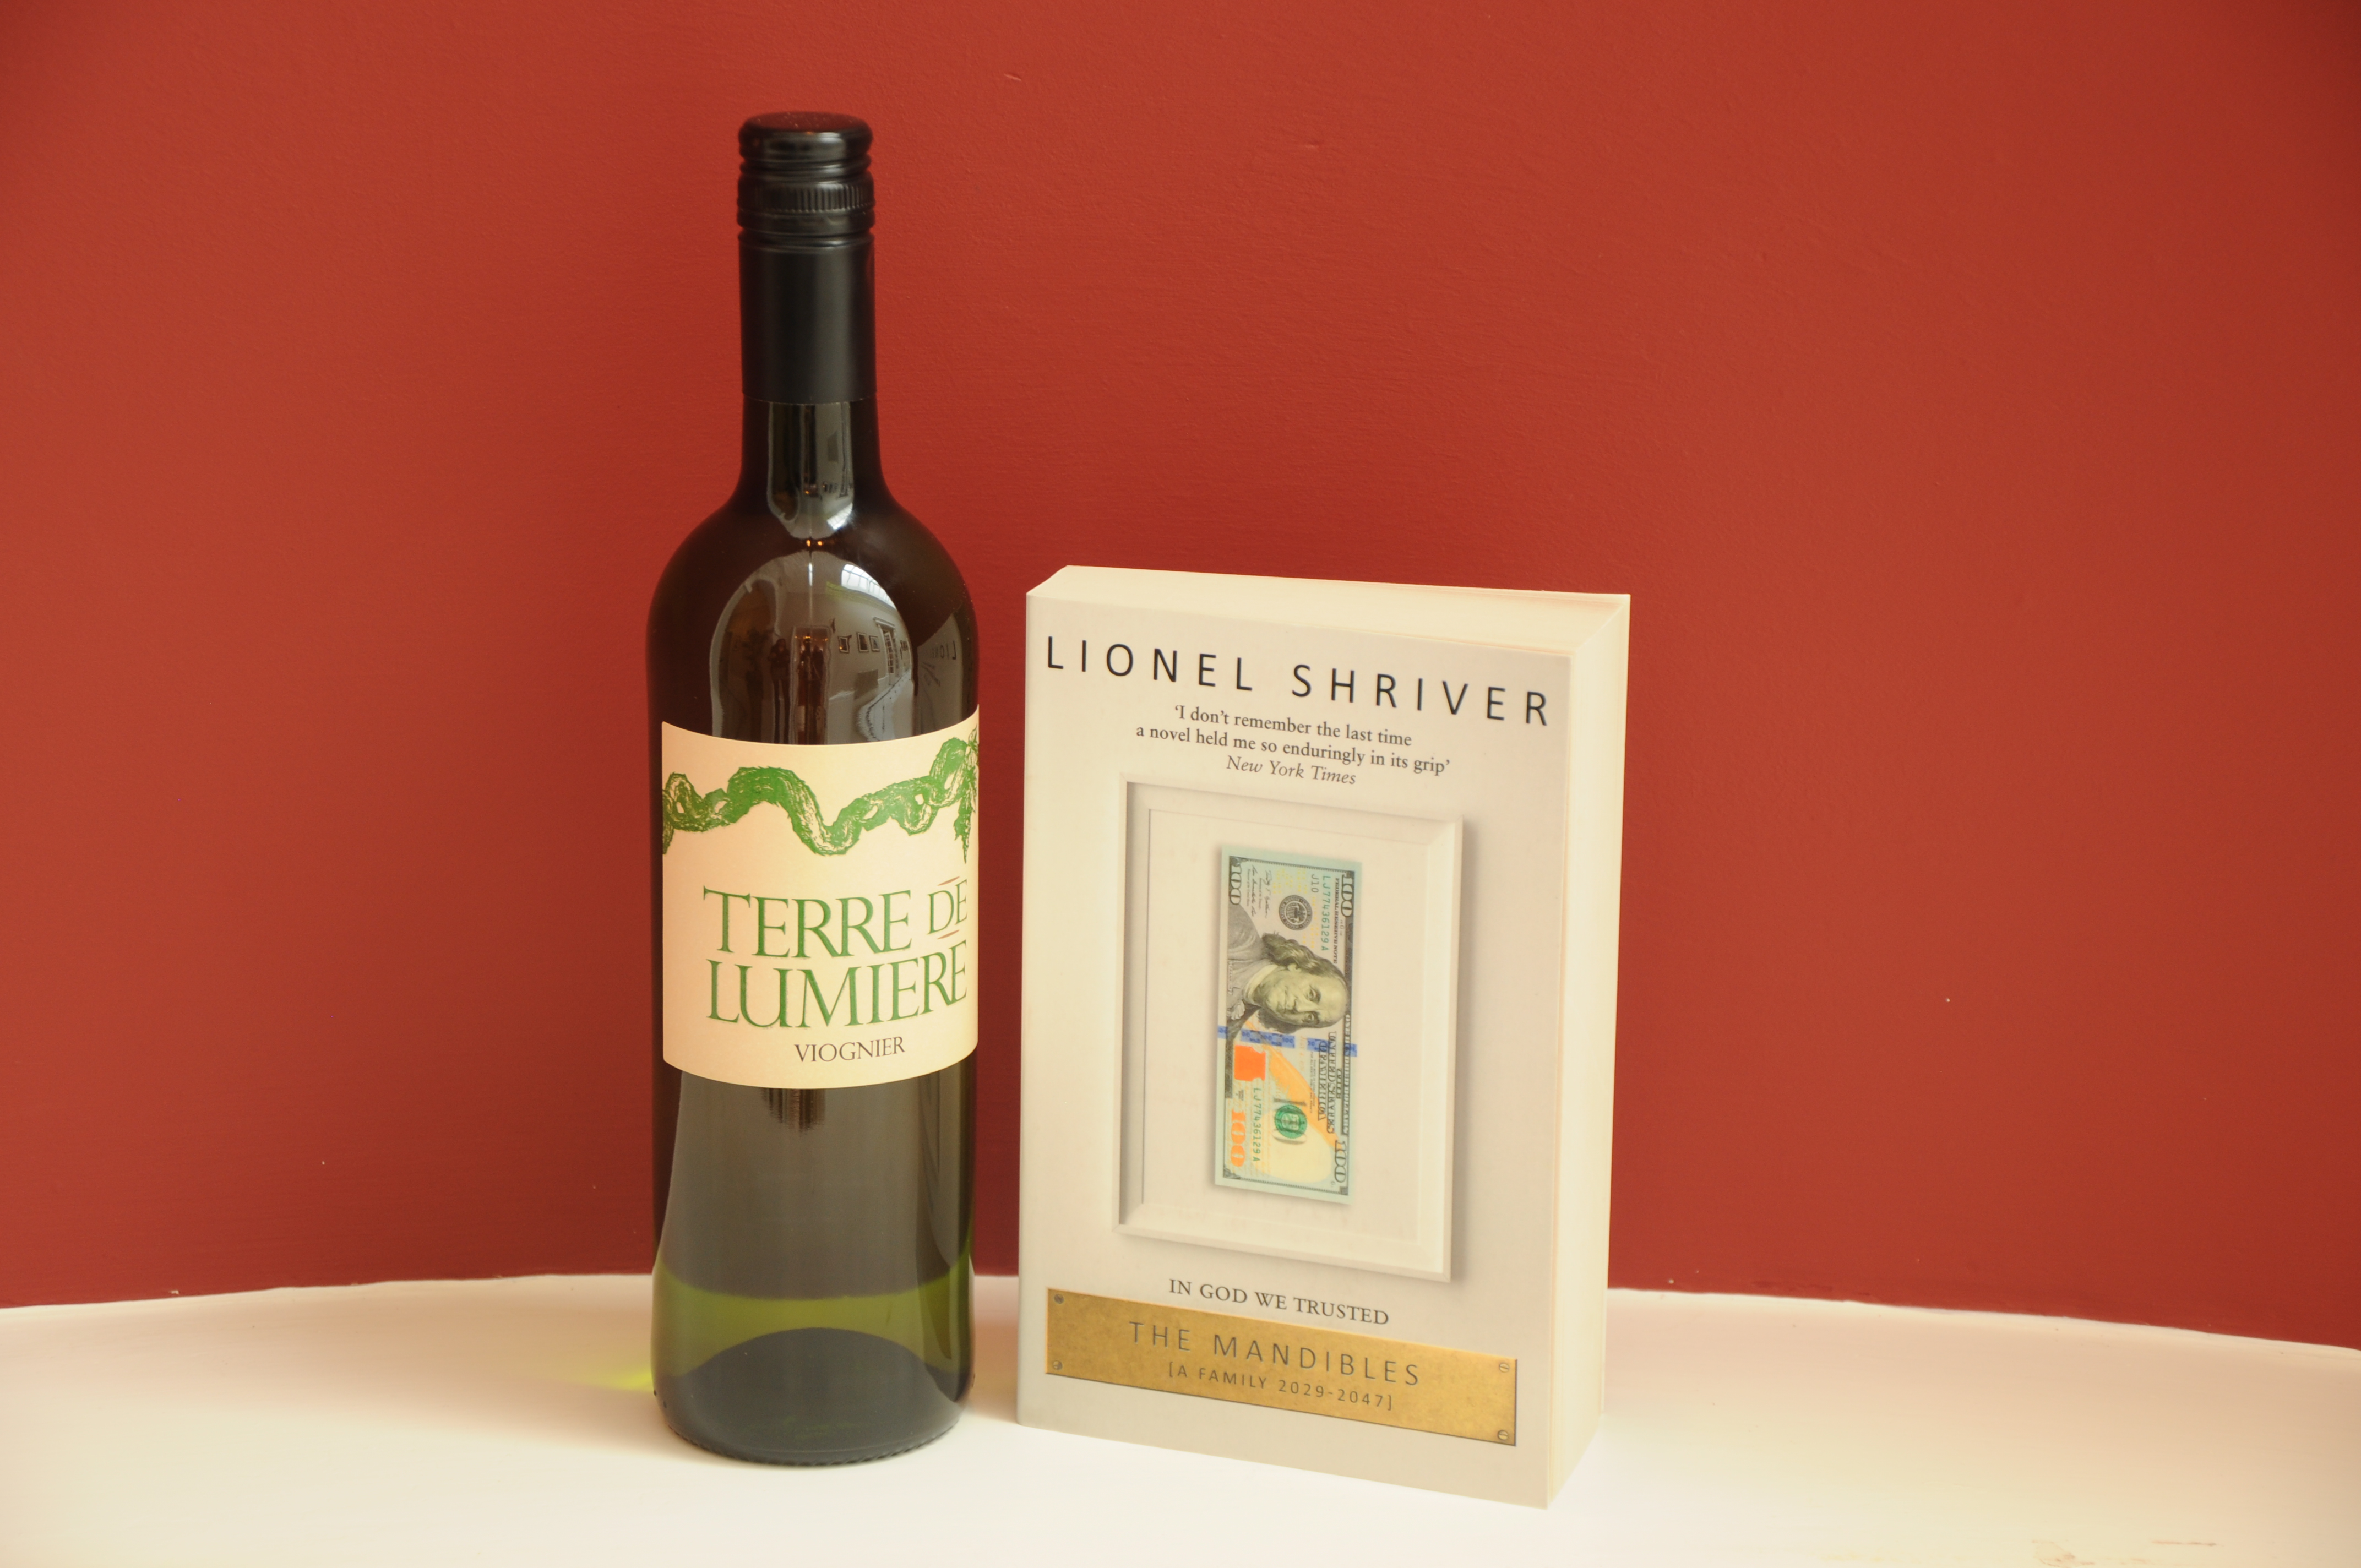 Damian Barr: Drinking wine with Lionel Shriver